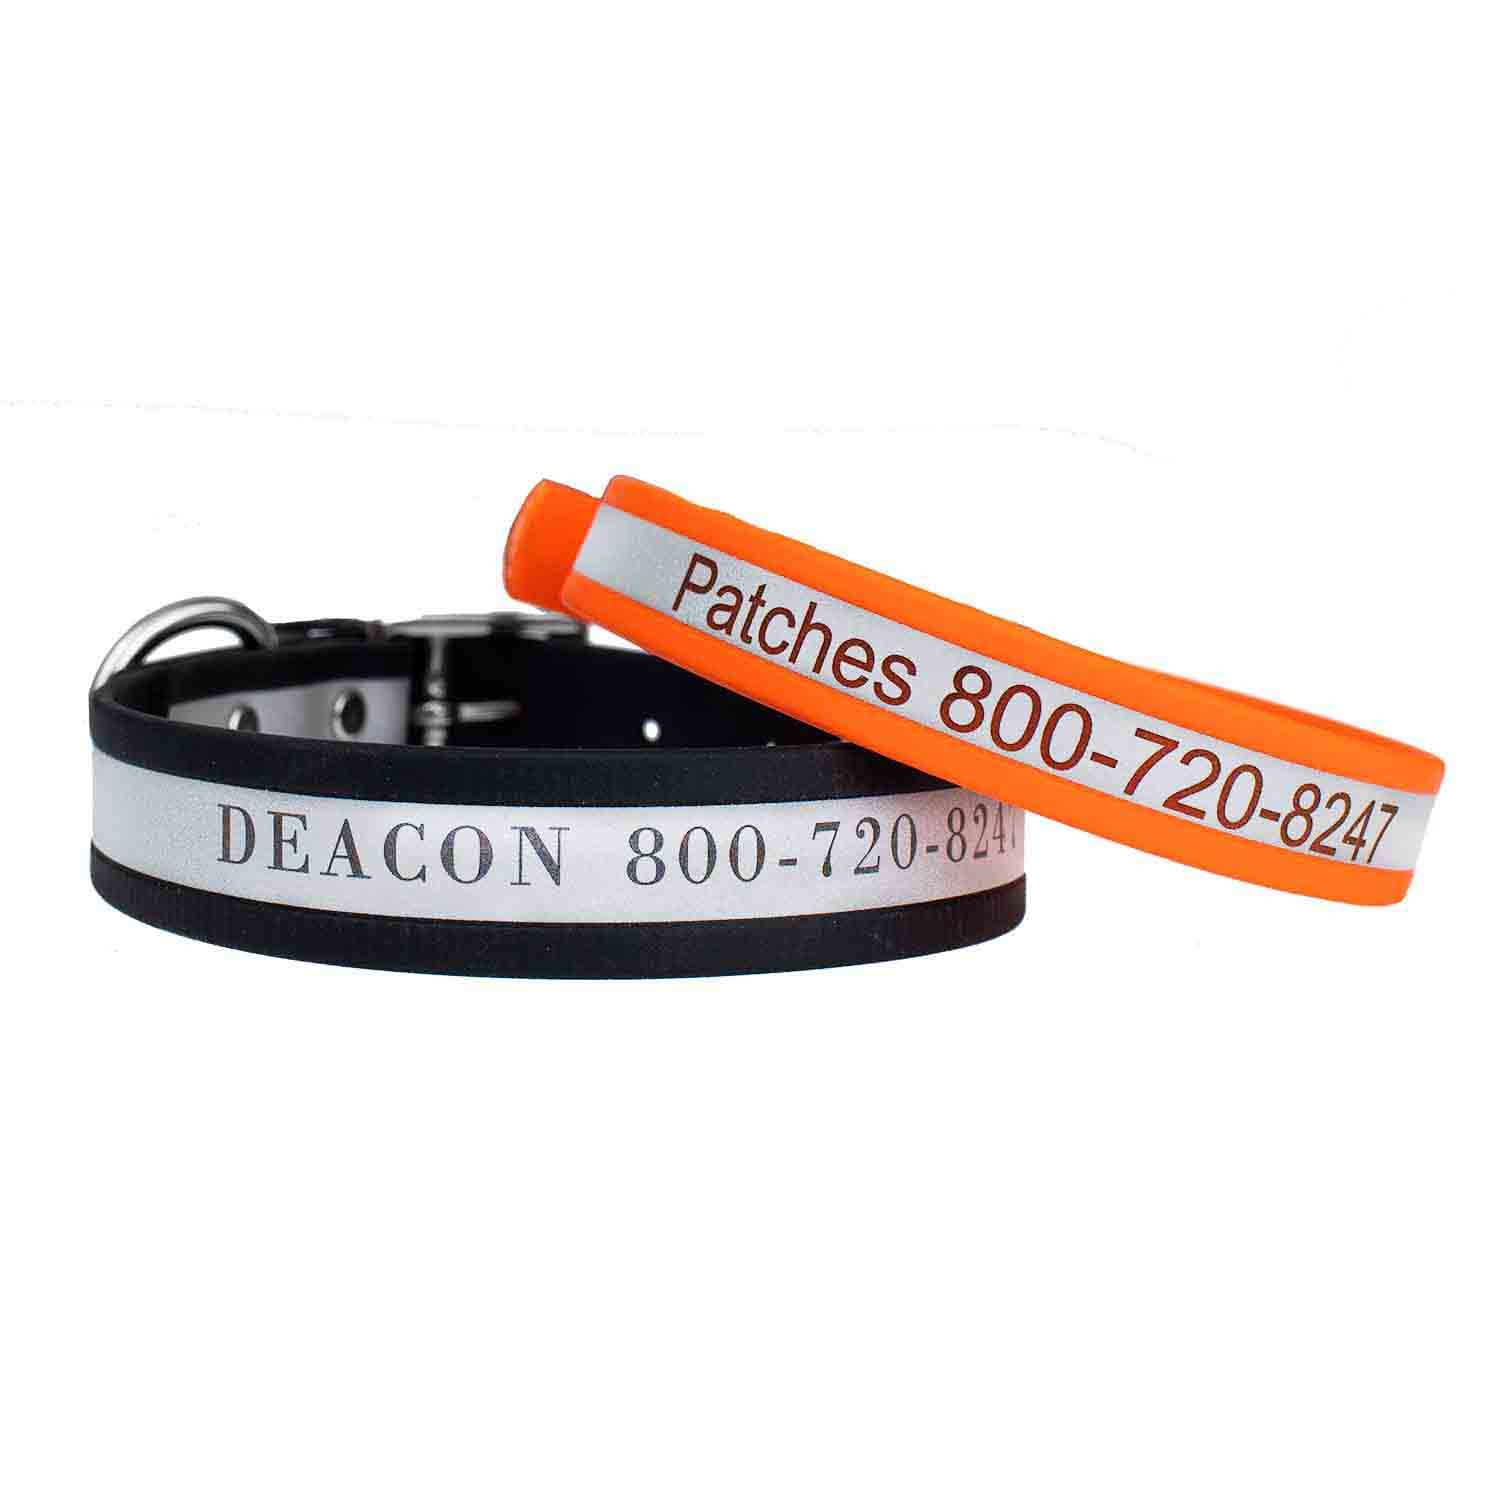 Engraved Reflective Waterproof Soft Grip Dog Collar Group